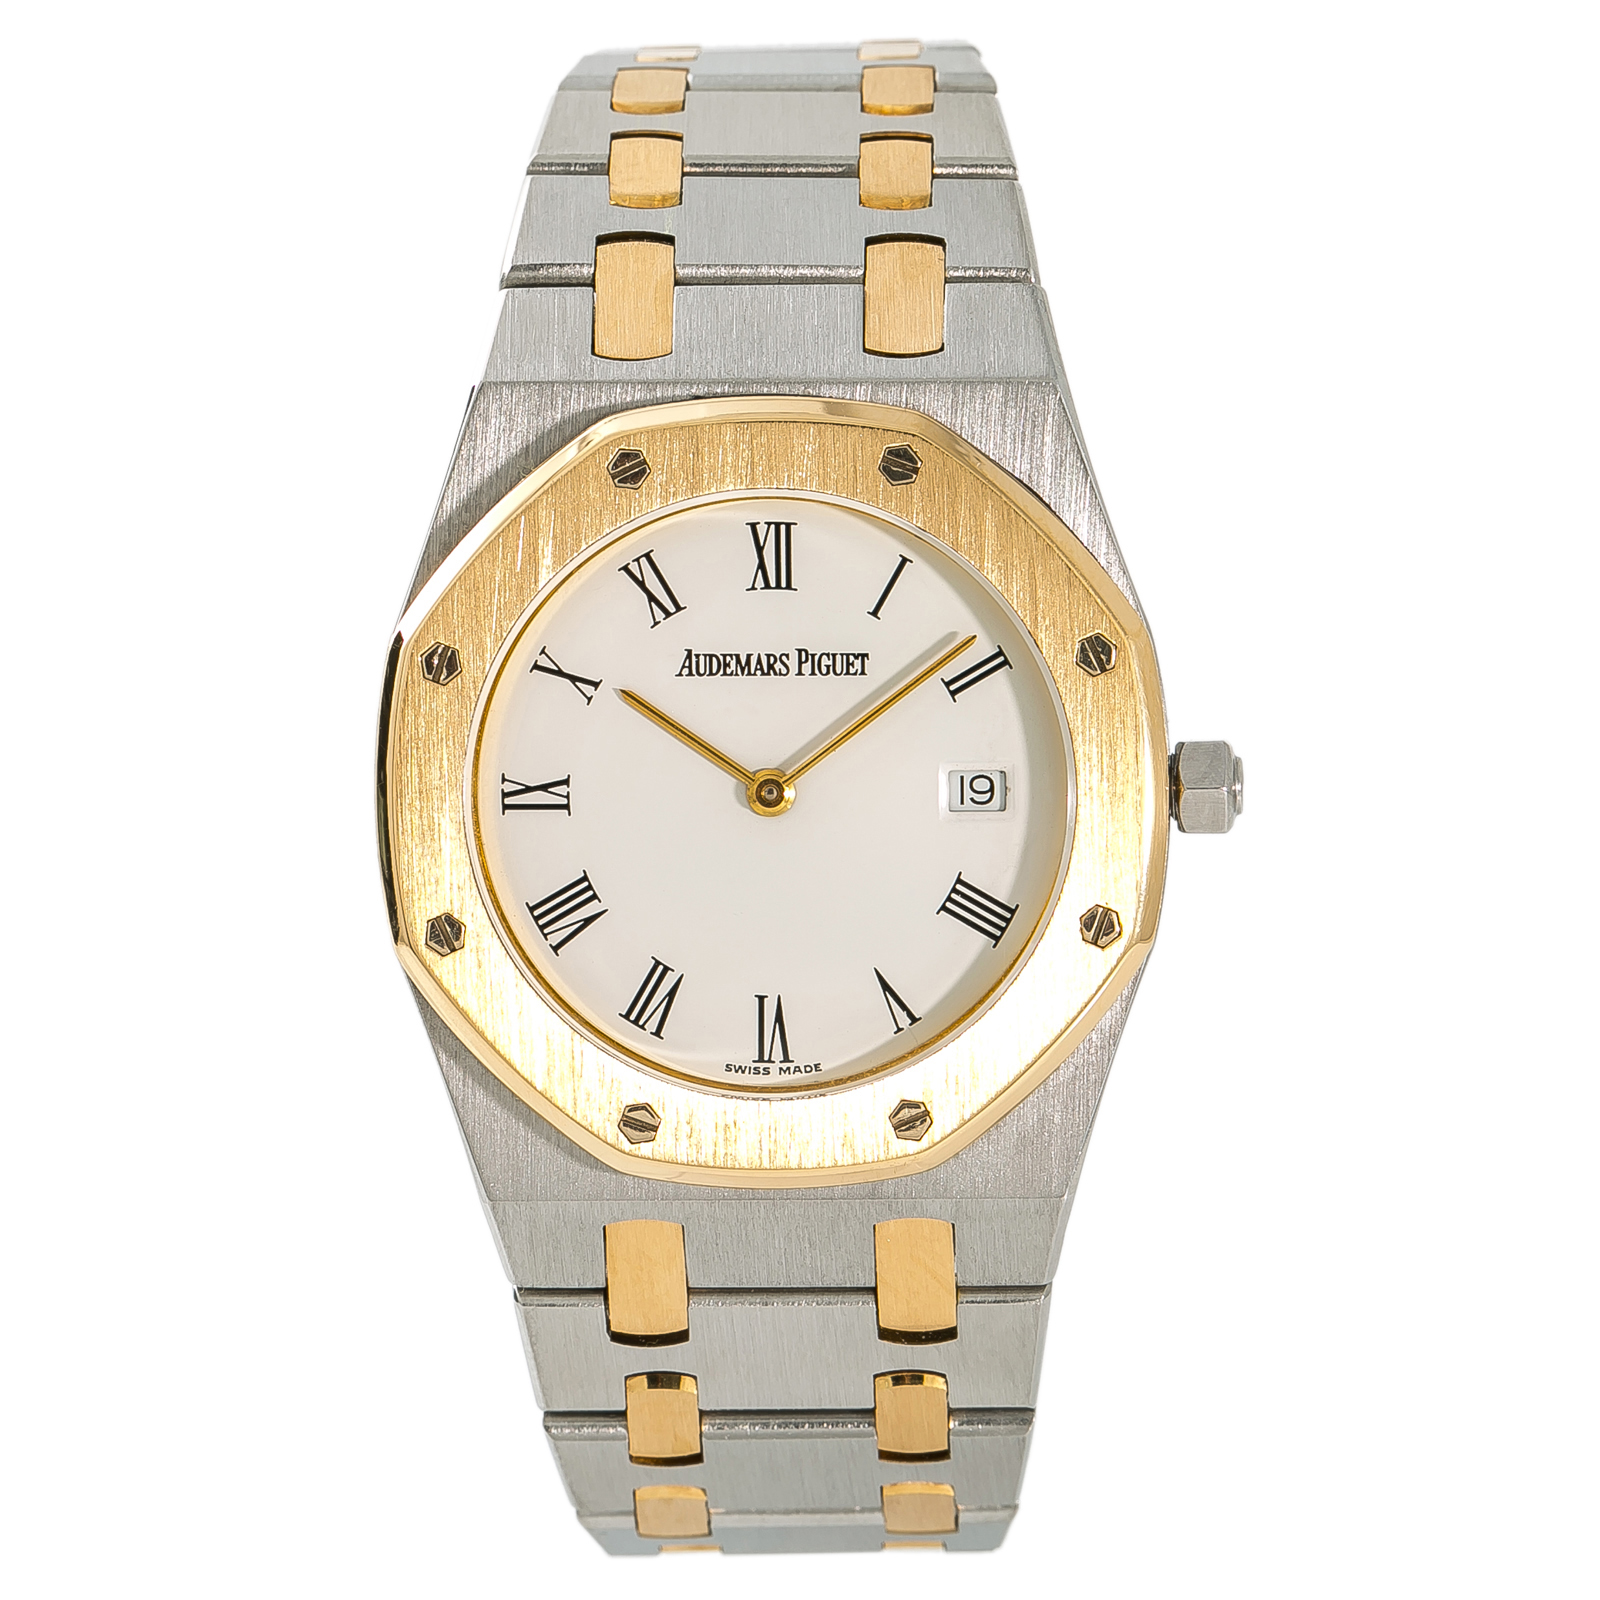 ba3d599ba0e Details about Audemars Piguet Royal Oak Mens Vintage Quartz Watch 18k Two  Tone 33mm